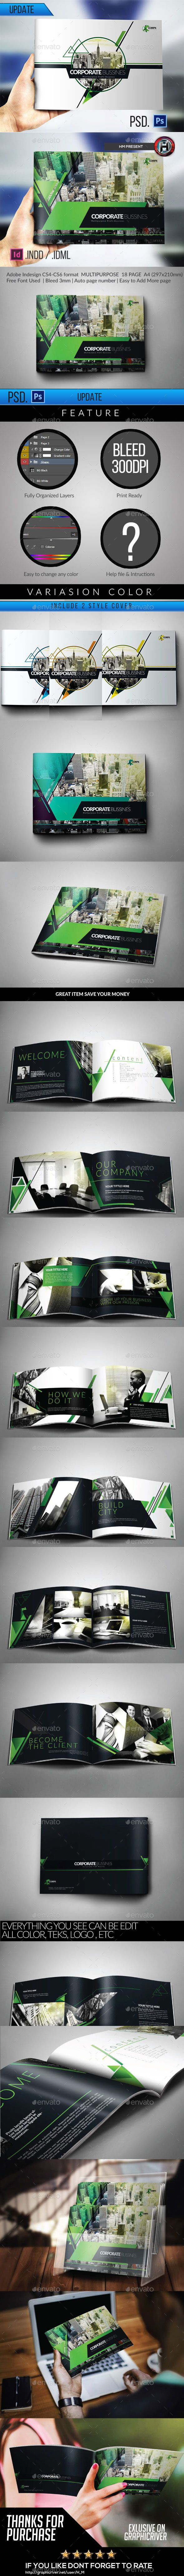 Multipurpose Modern Corporate Geometris Brochure